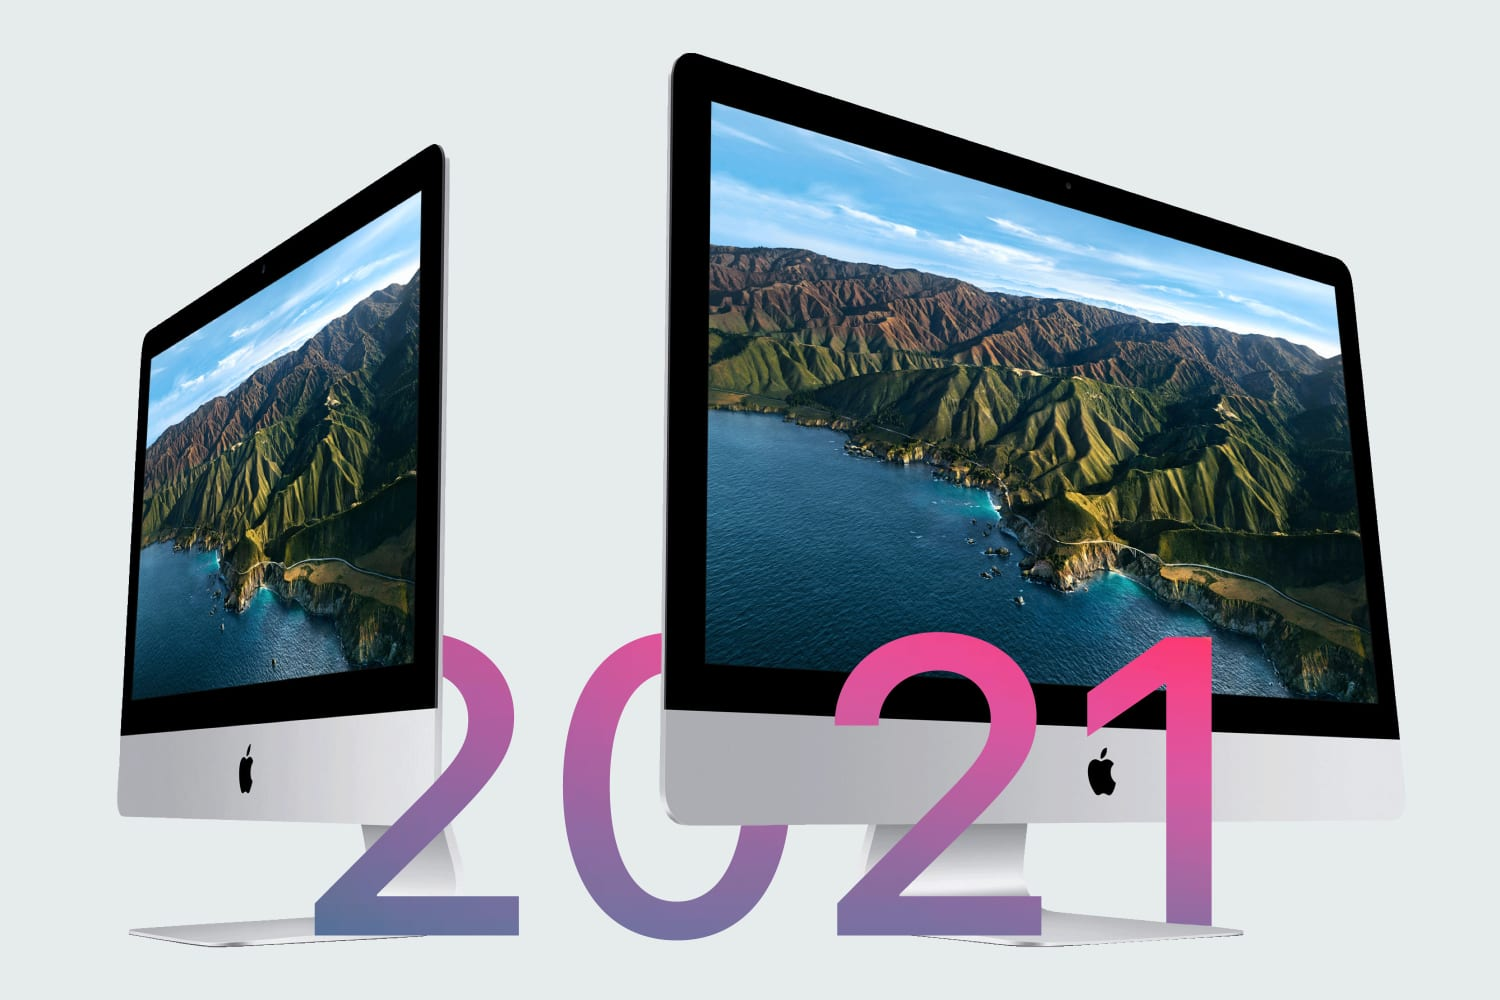 apple-poised-to-unleash-all-new-imac-in-q1-2021-20201125-1